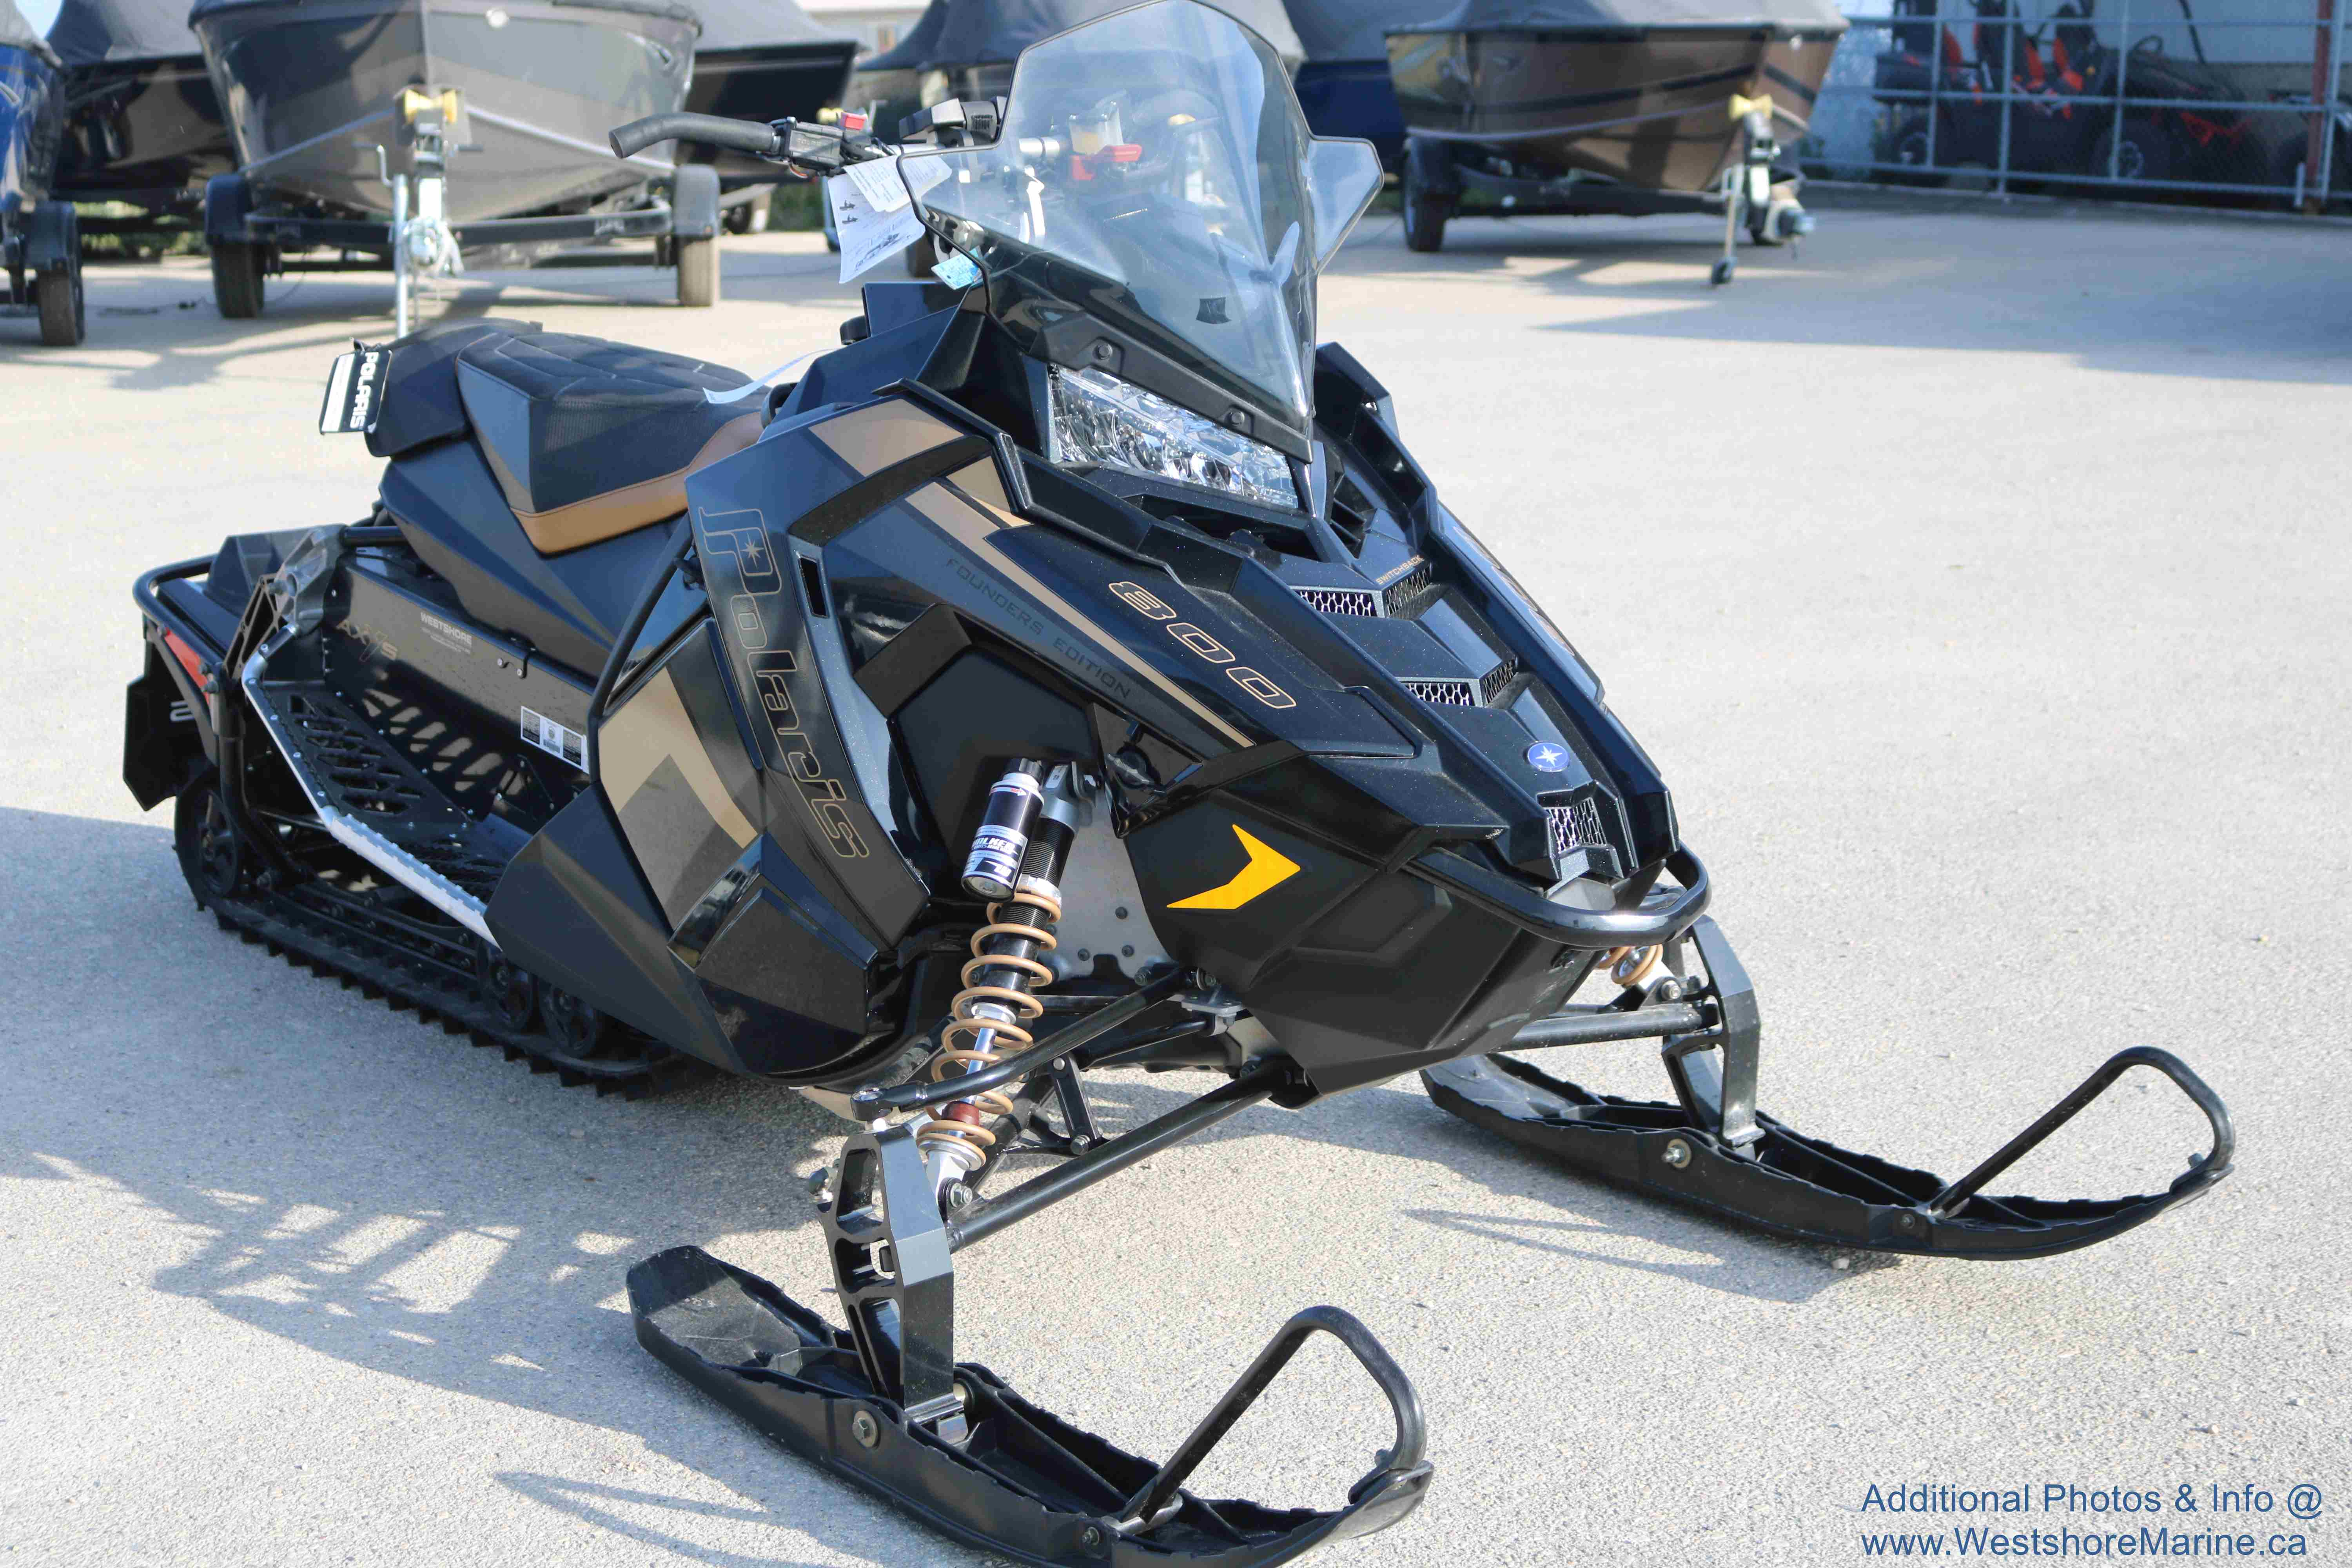 New 2019 Polaris 800 SWITCHBACK PRO-S PIDD / GPS / Electric Start!